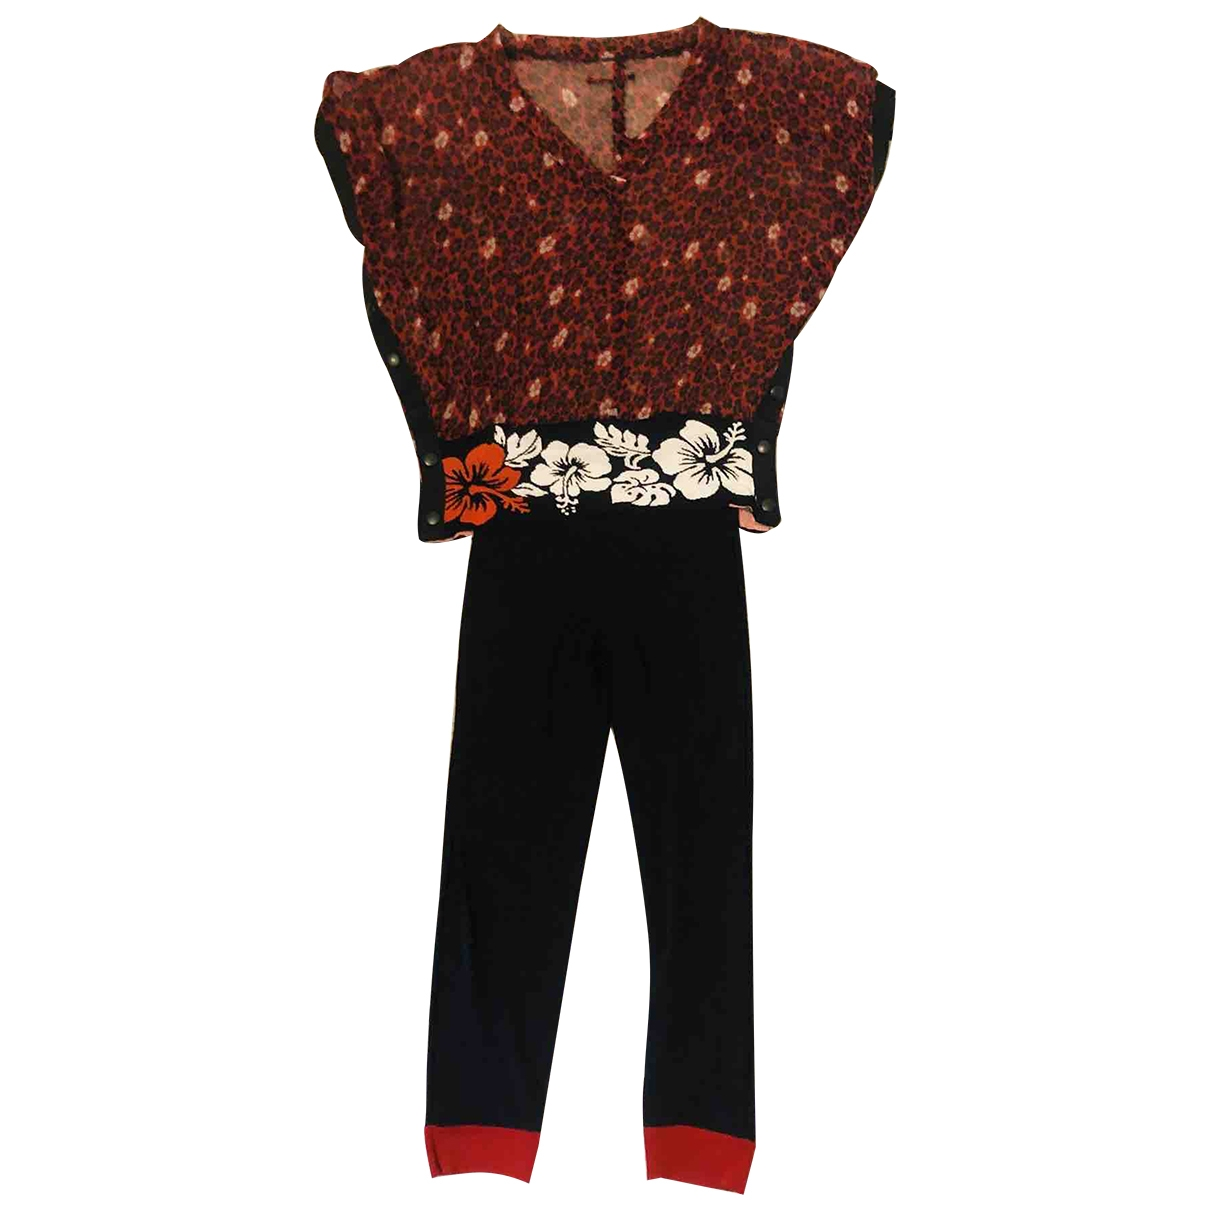 Jean Paul Gaultier \N jumpsuit for Women 38 IT